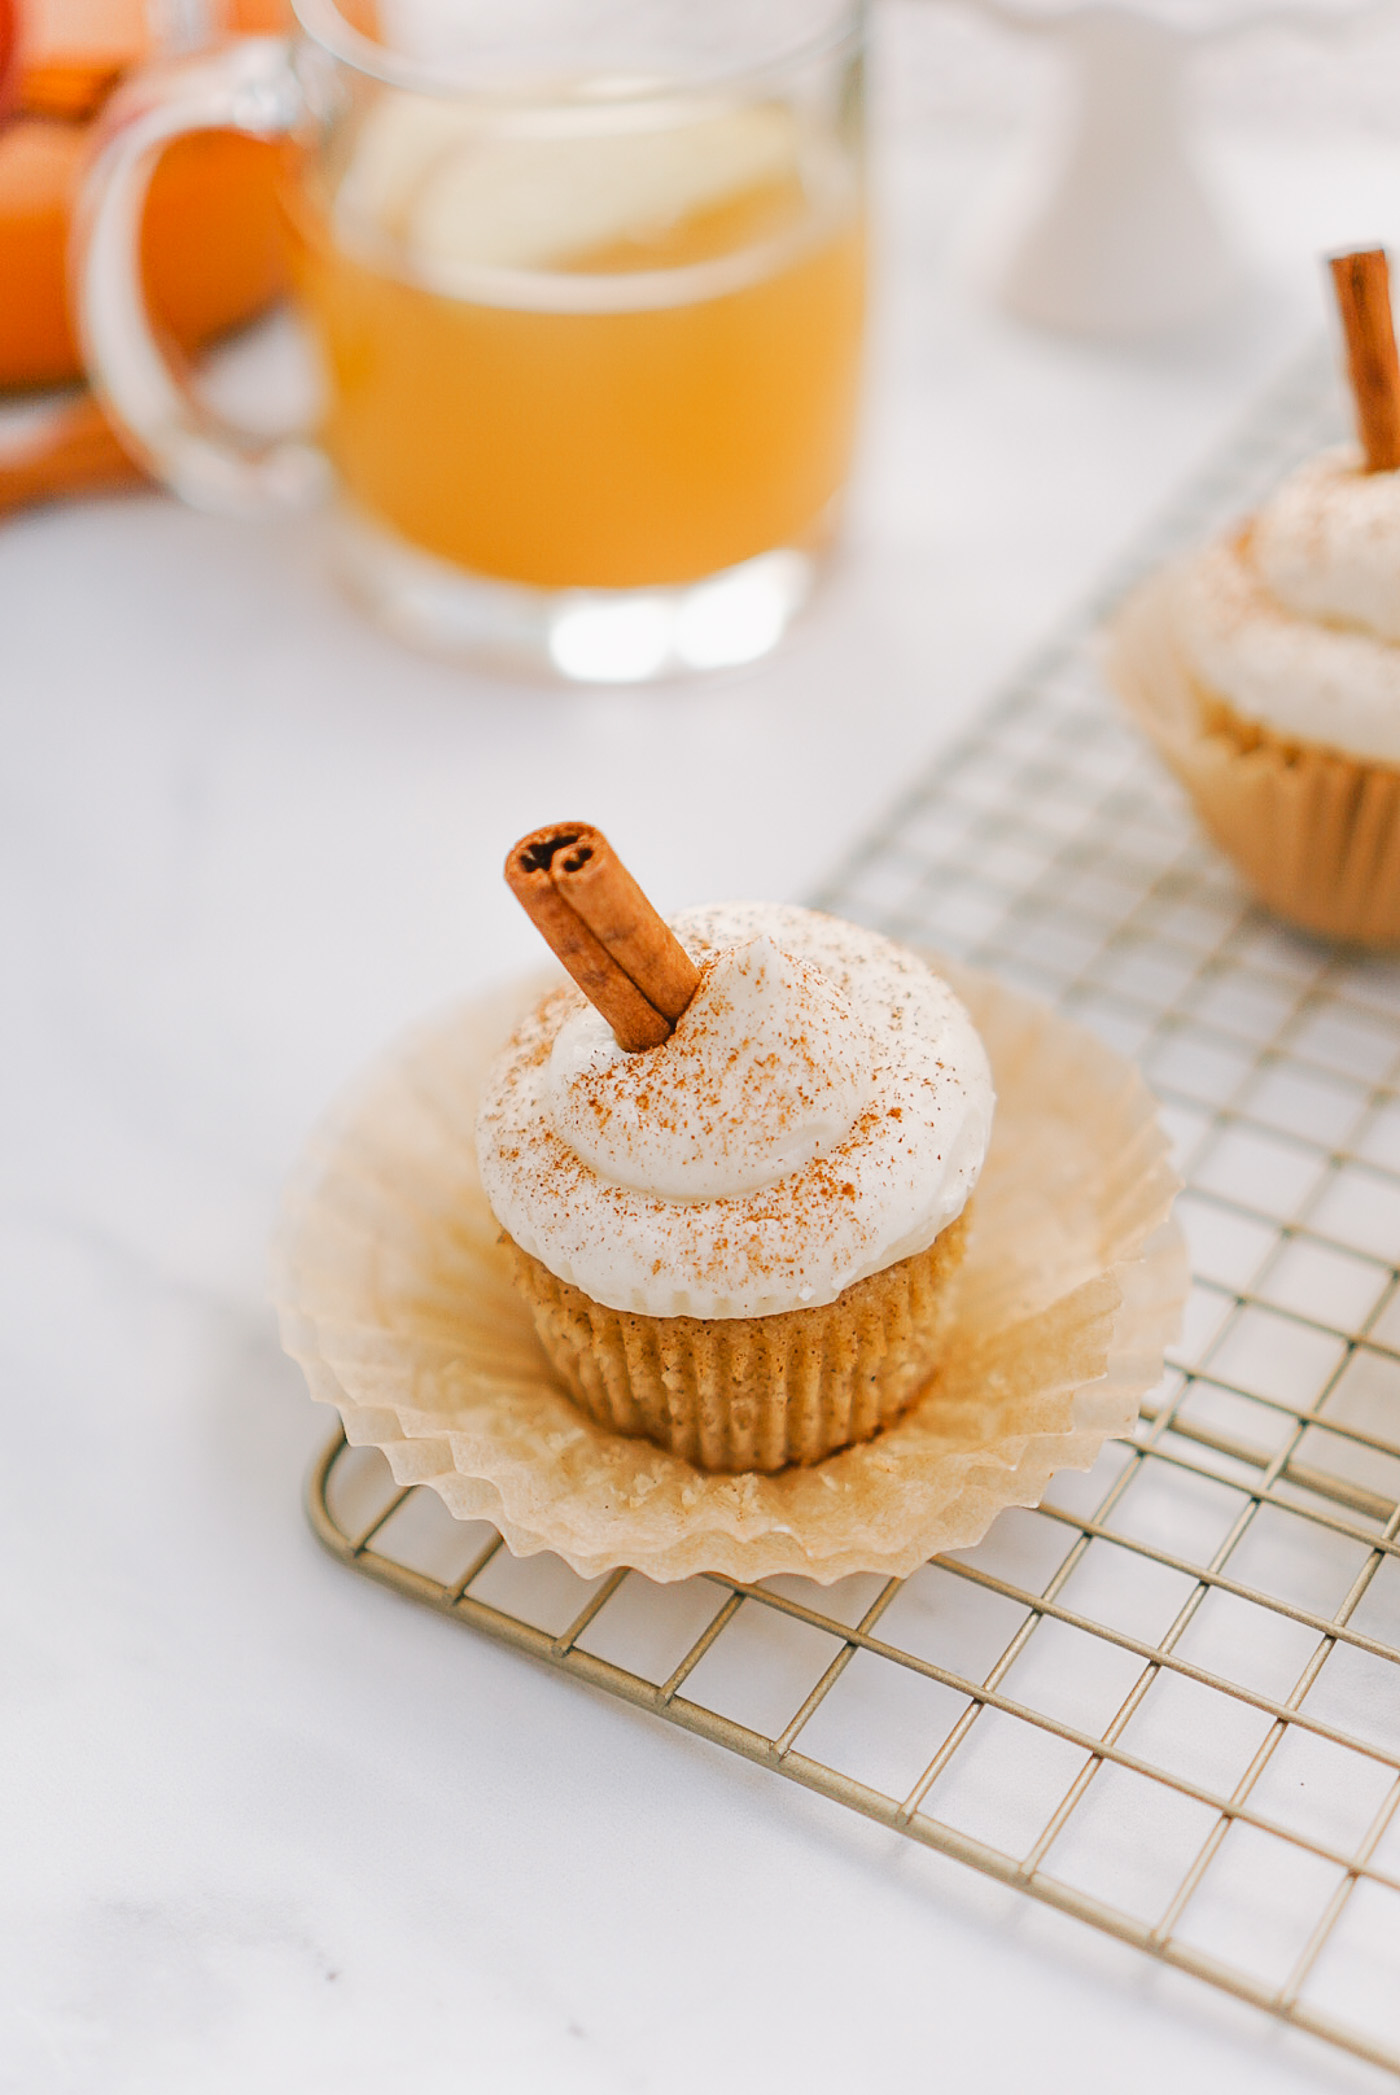 Apple cider cupcakes with cream cheese frosting and a cinnamon stick on gold cooling rack on white surface.